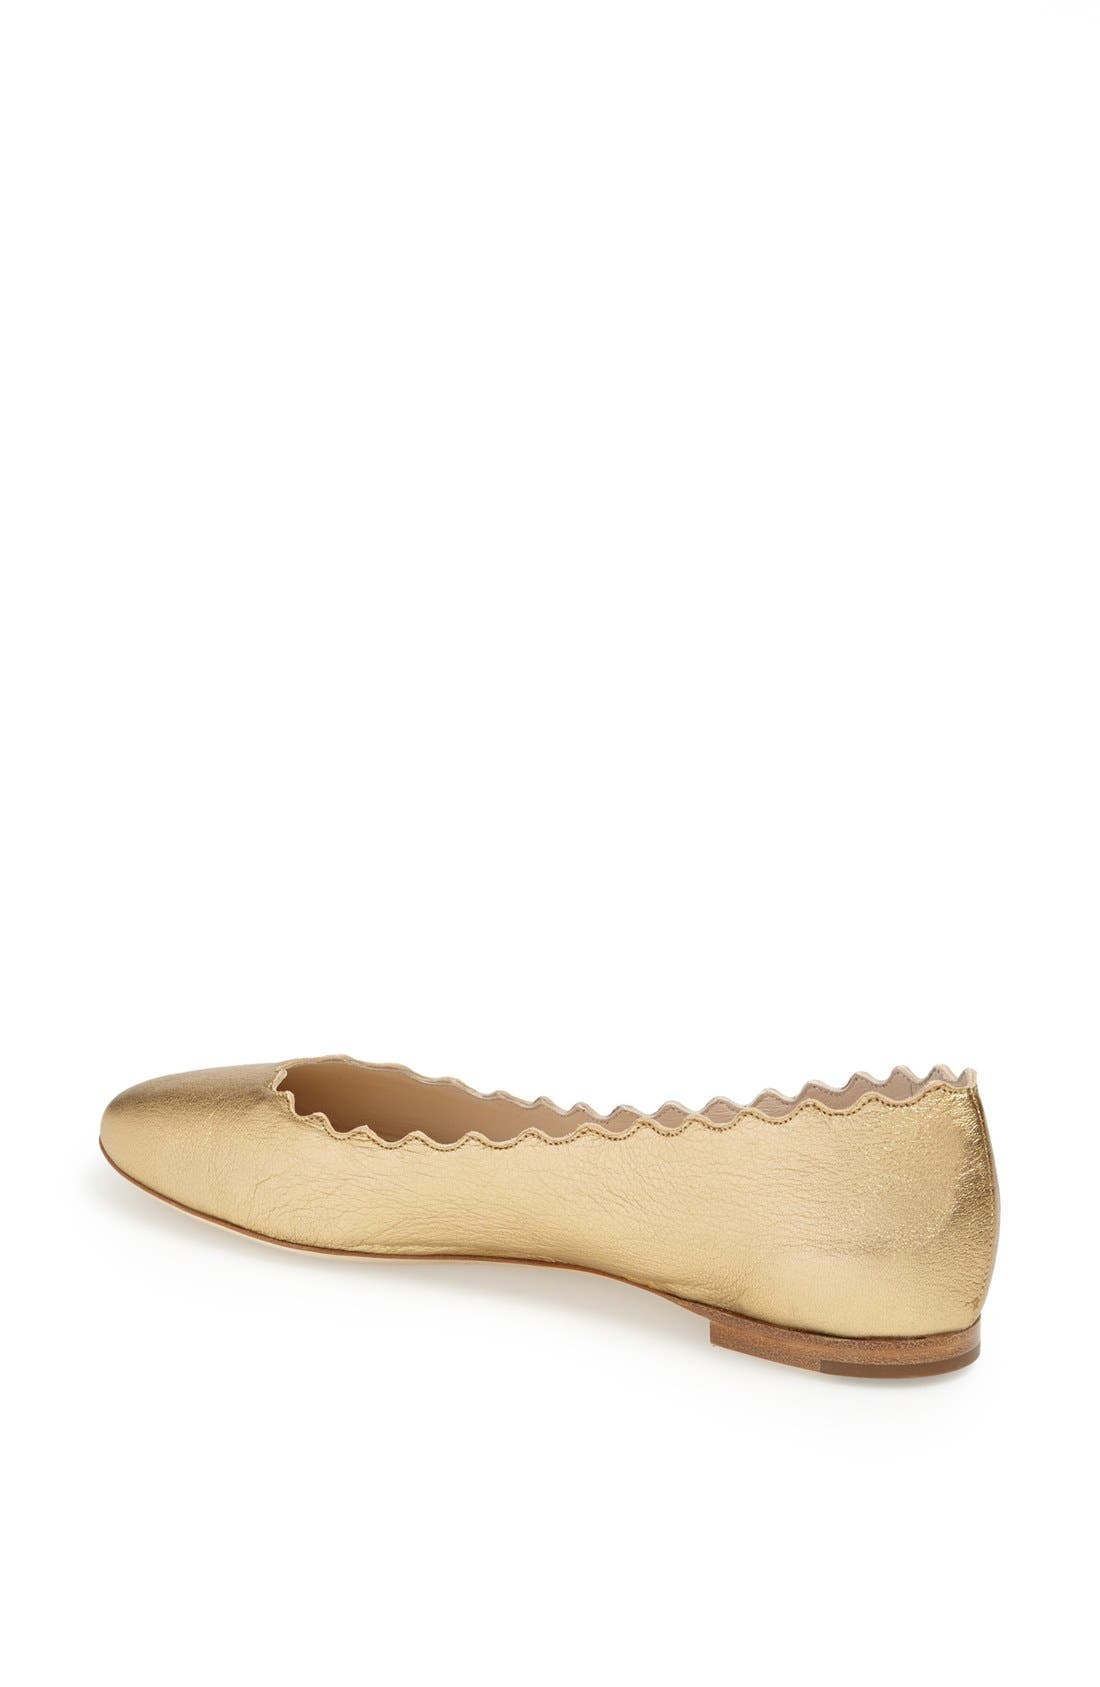 Alternate Image 2  - Chloé 'Lauren' Scalloped Ballet Flat (Women)